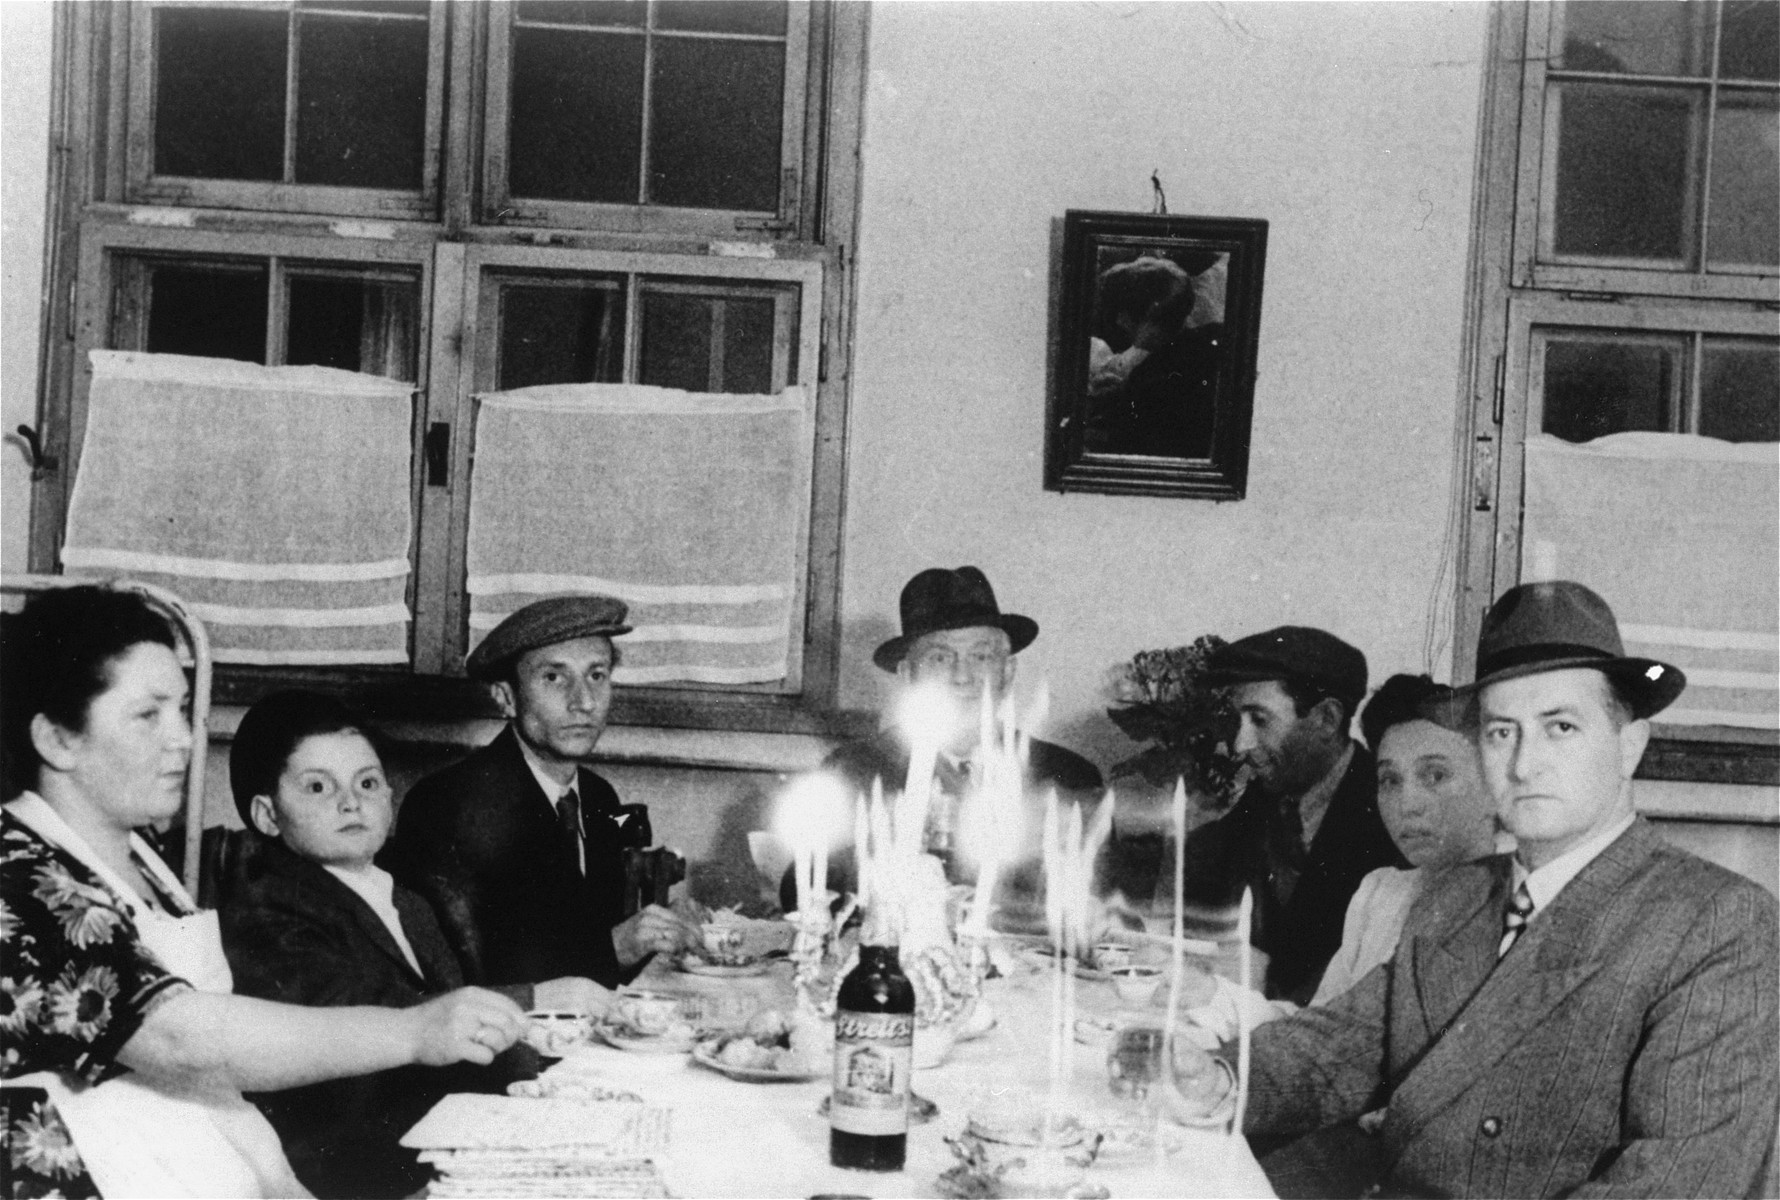 The Gurfein family attends a Passover seder at the Landsberg displaced persons camp.    Pictured from left to right are:  Basia (Gurfein) Berliner; Itzhak Gersten (her nephew); Nathan Berliner; and four other Polish Jews.